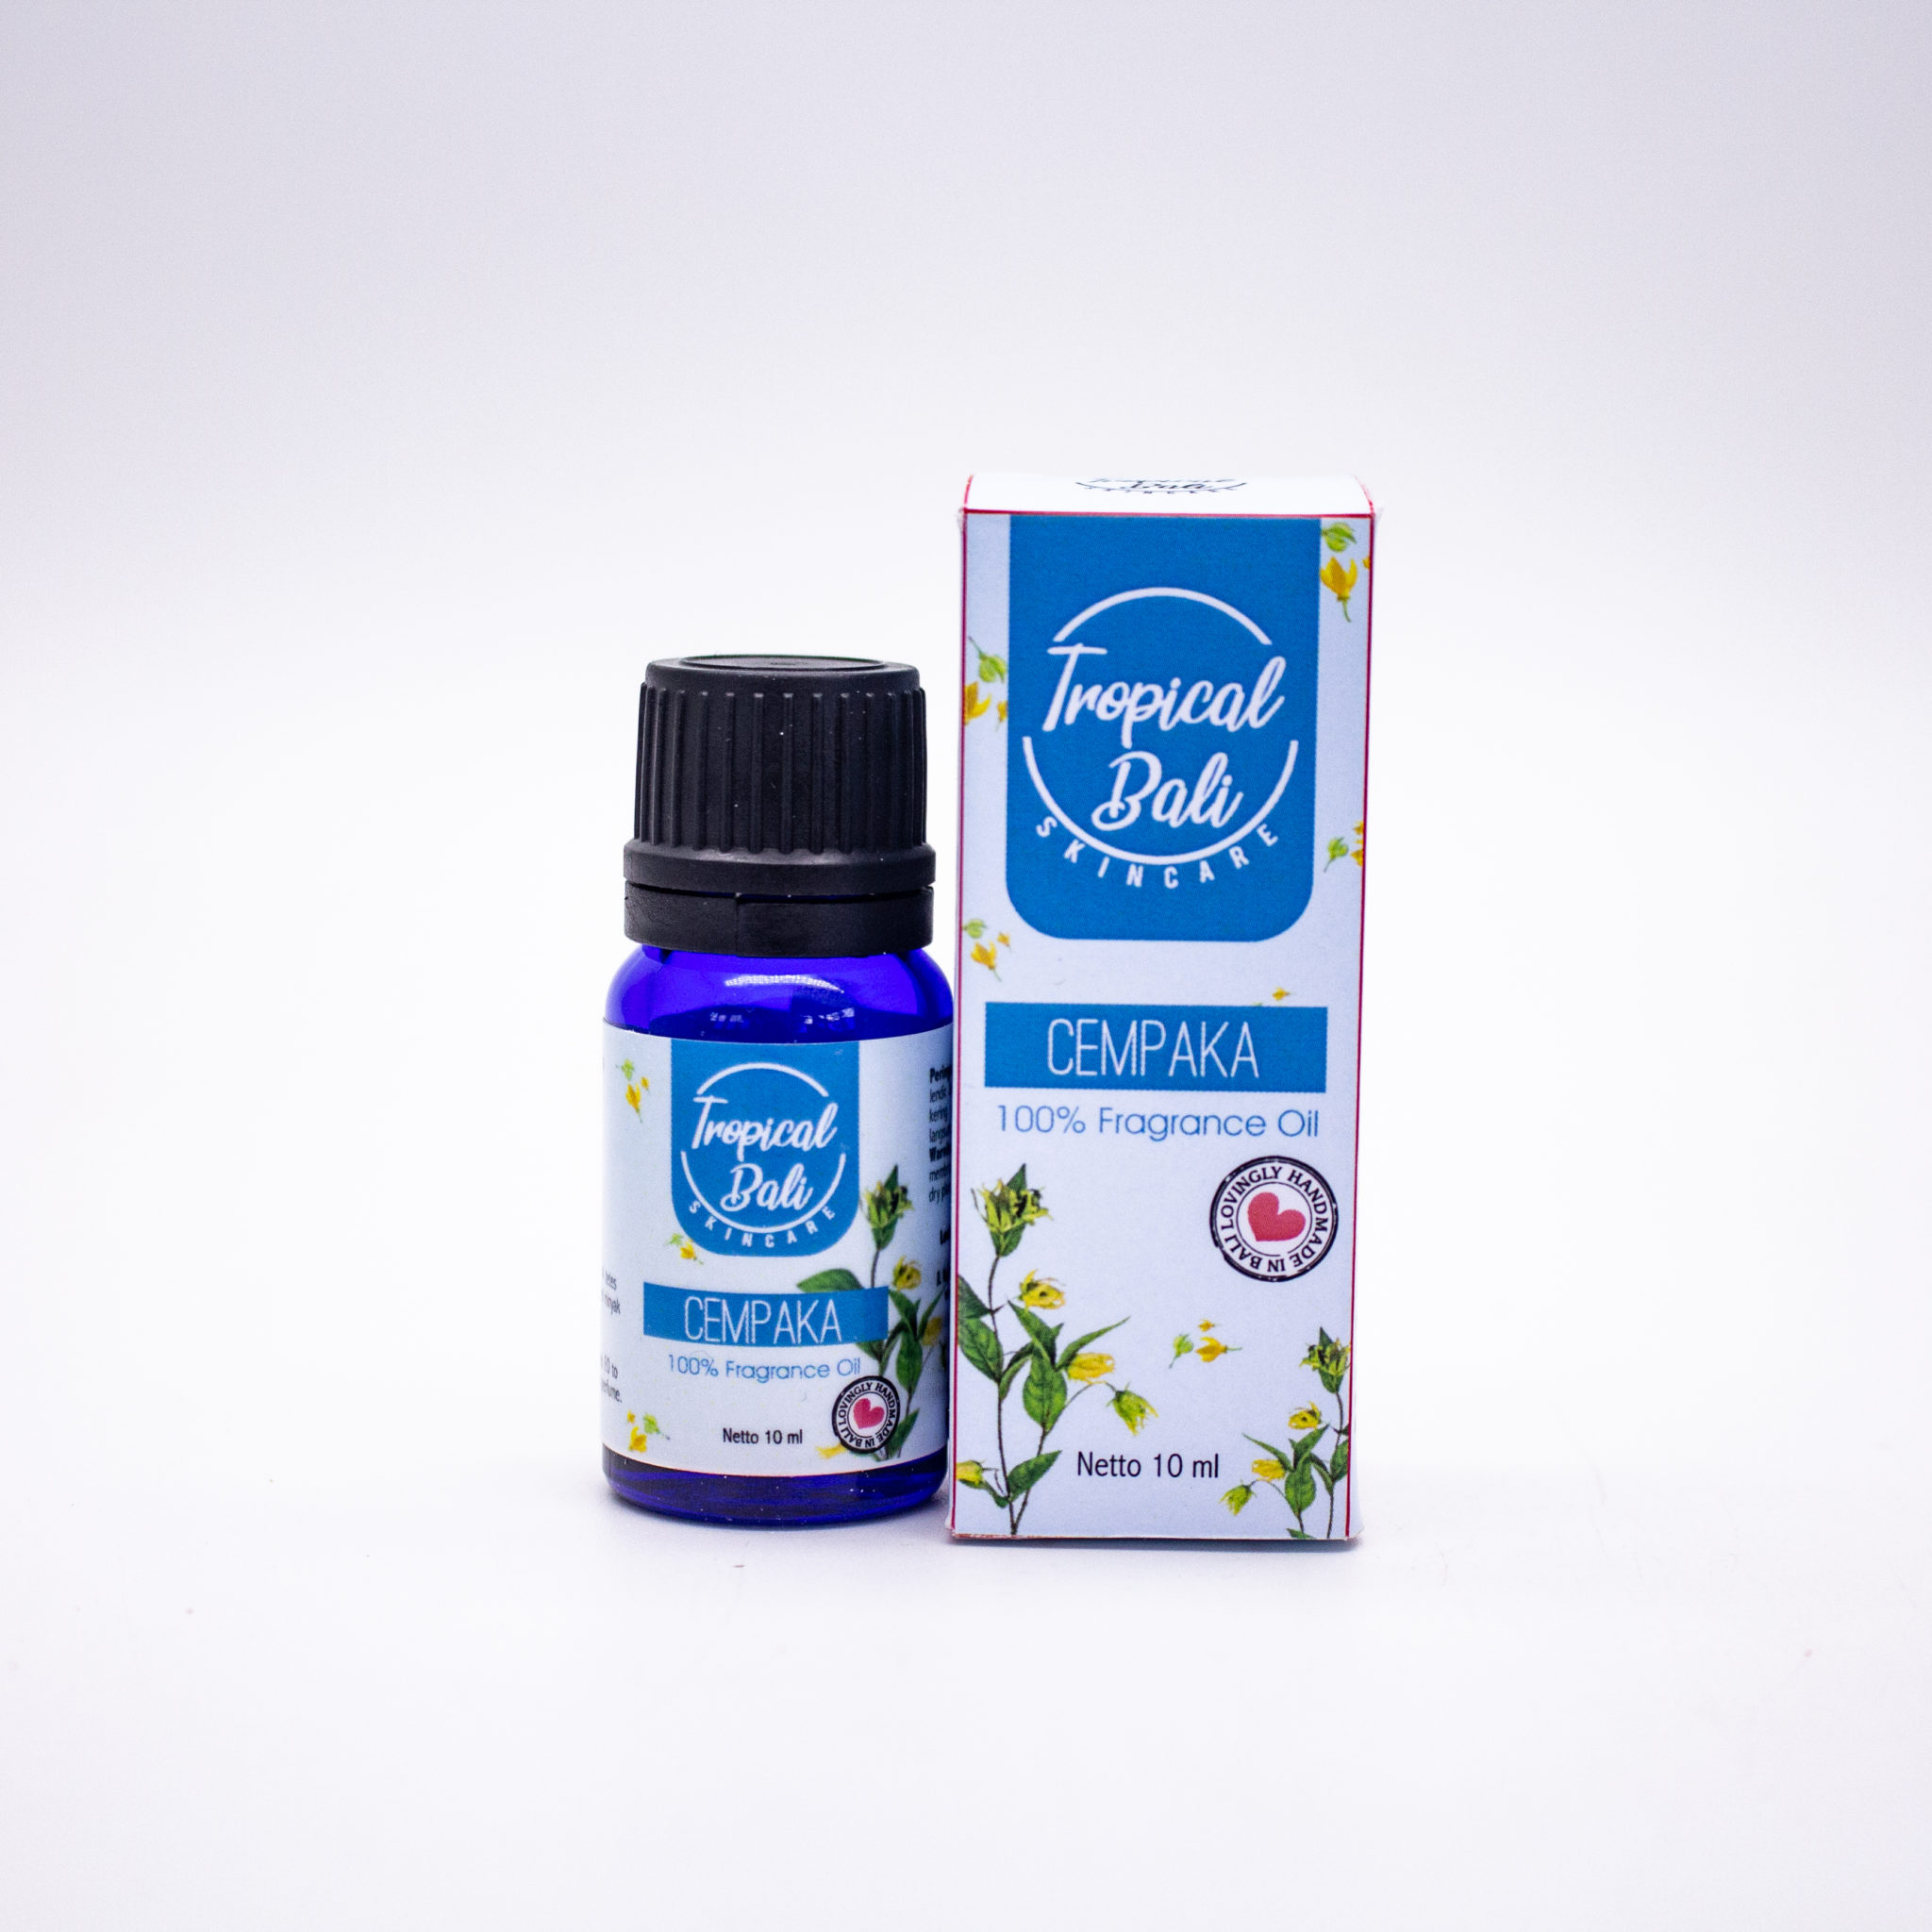 Cempaka Fragrance Oil